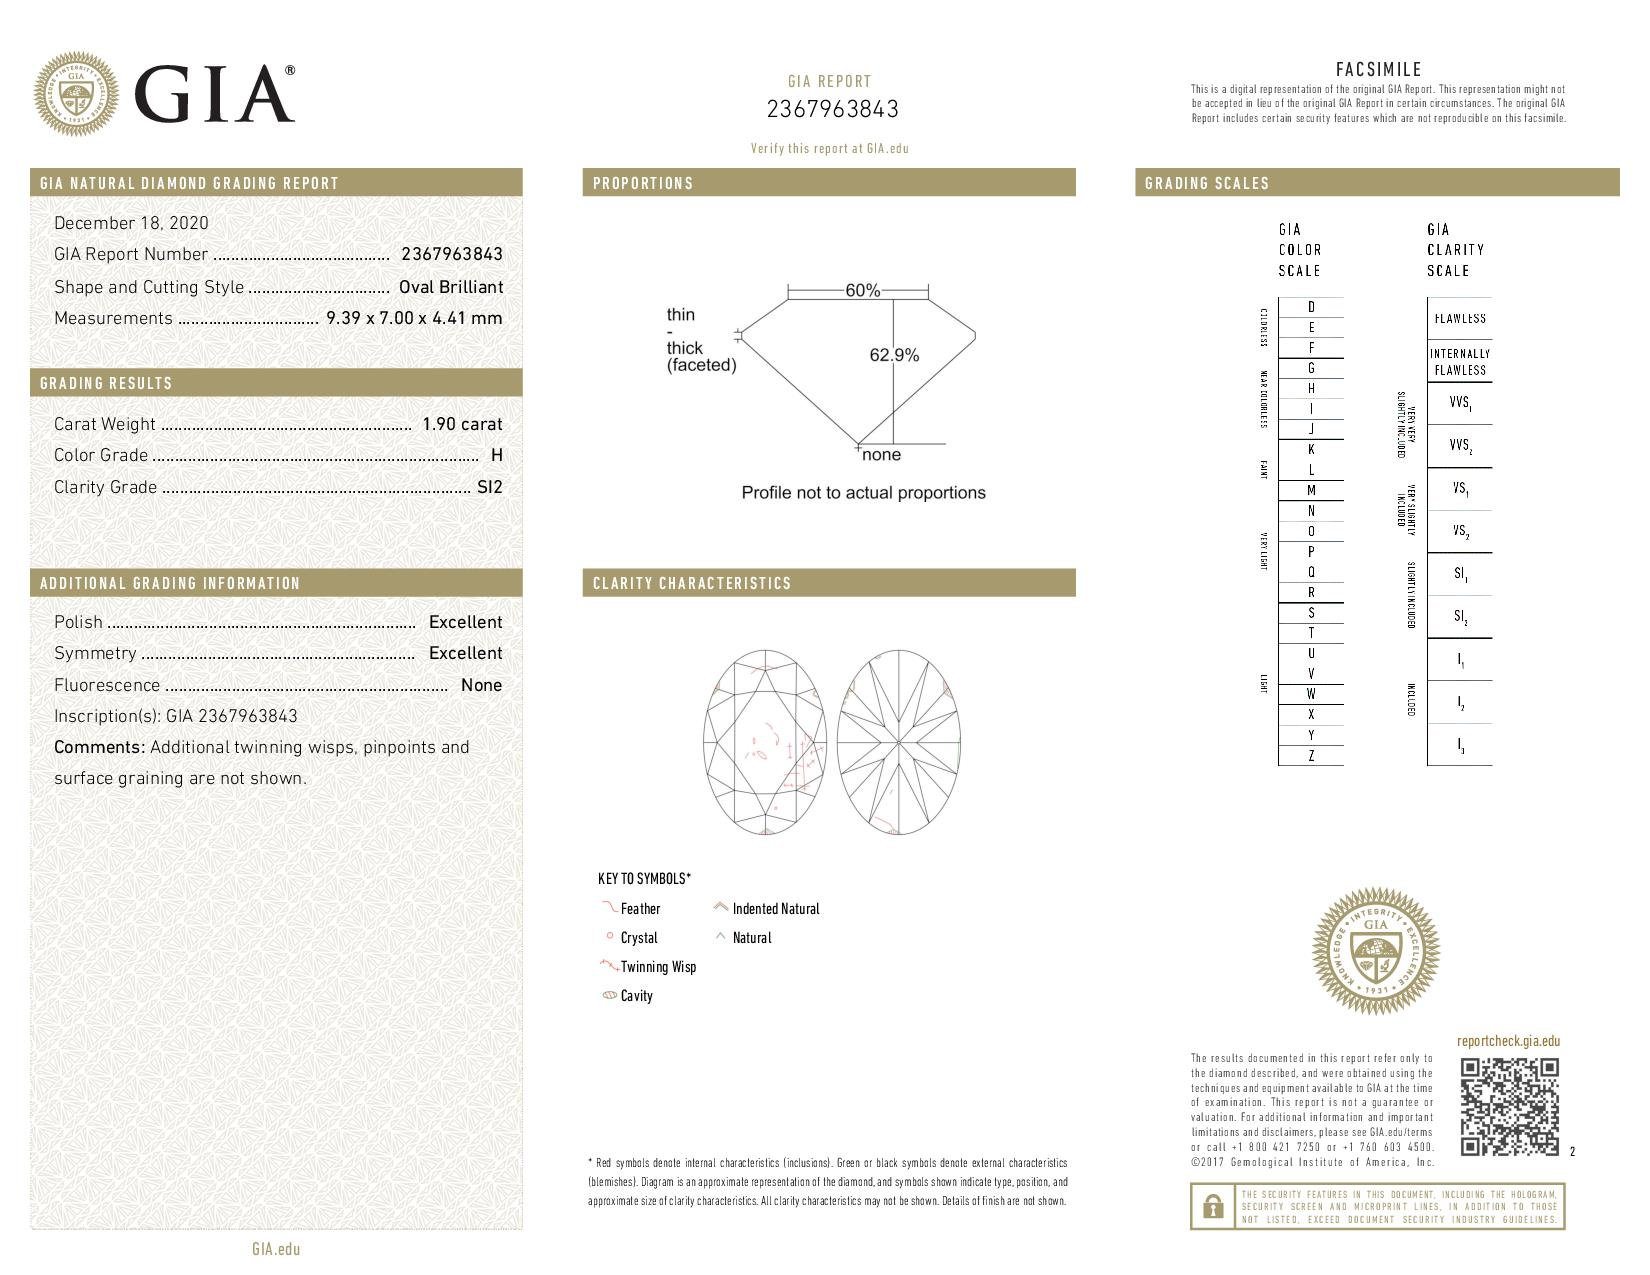 This is a 1.90 carat oval shape, H color, SI2 clarity natural diamond accompanied by a GIA grading report.